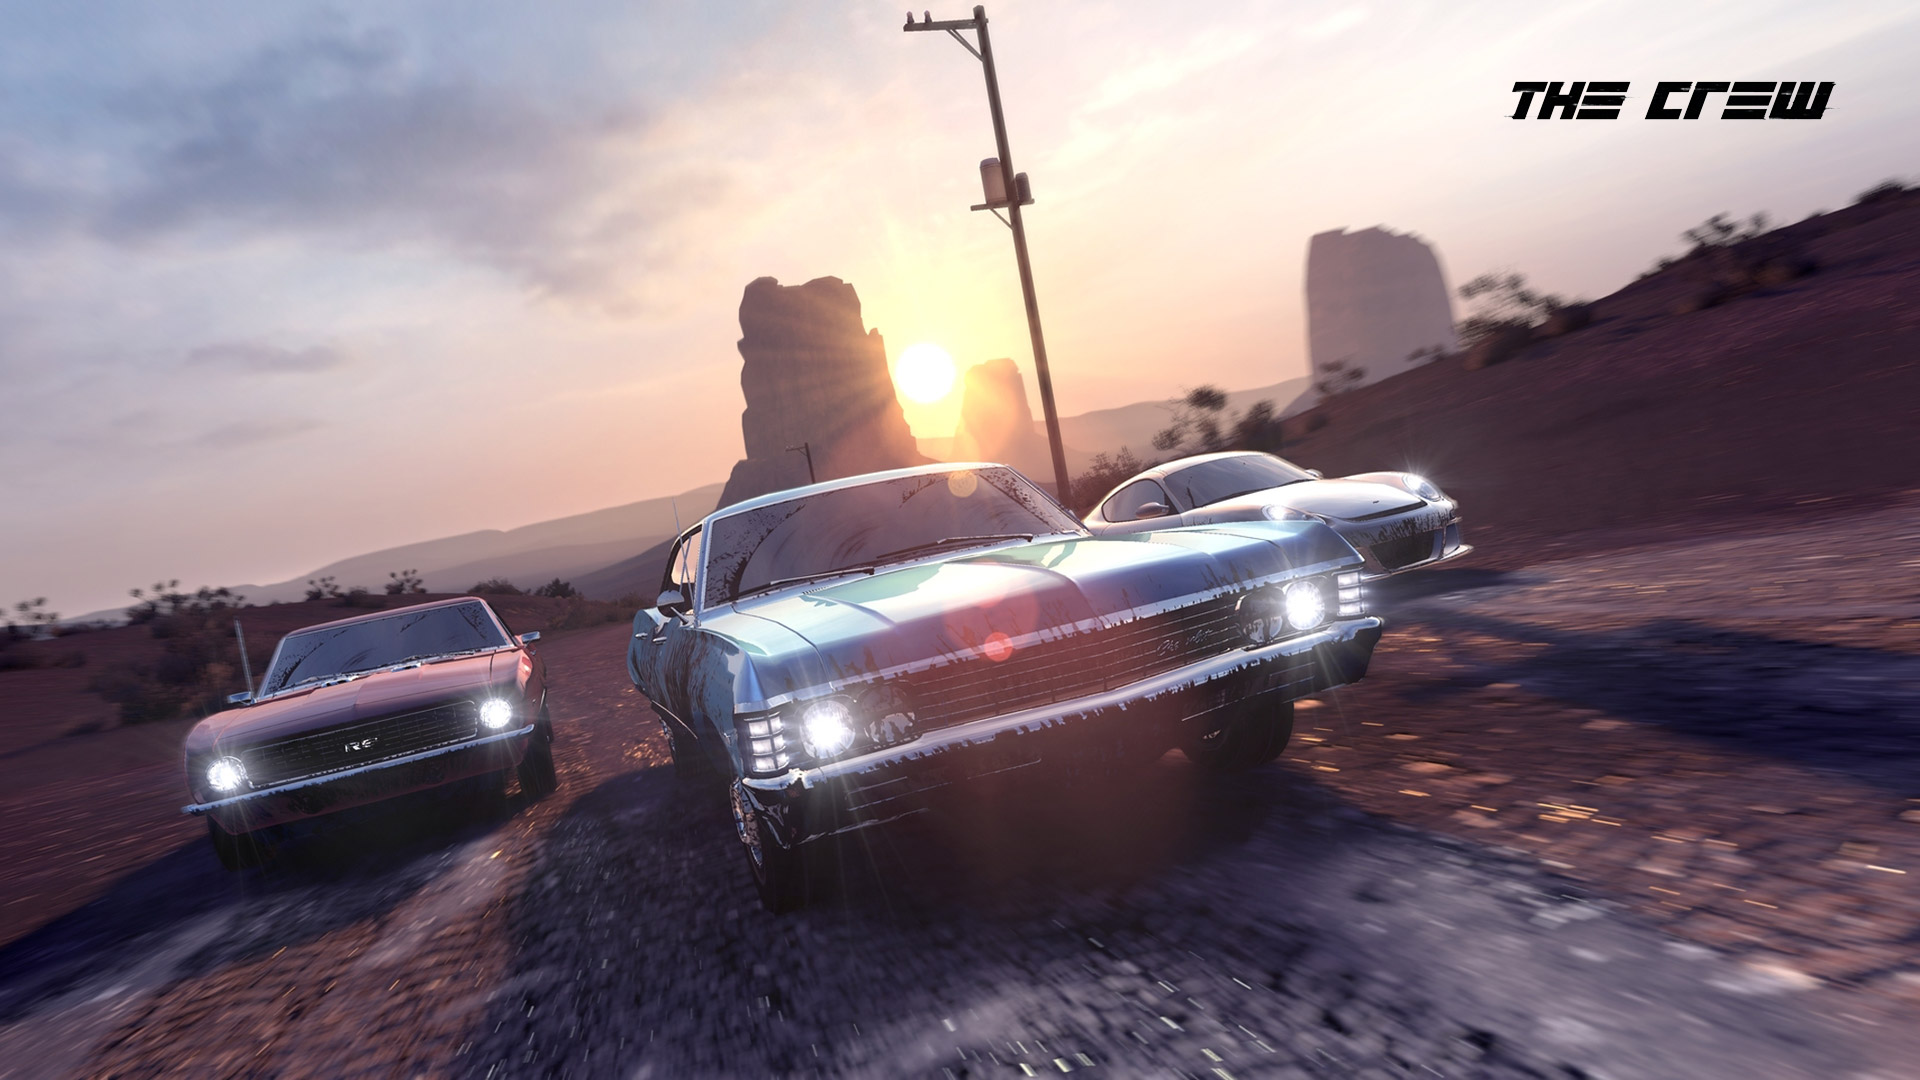 Free The Crew Wallpaper in 1920x1080